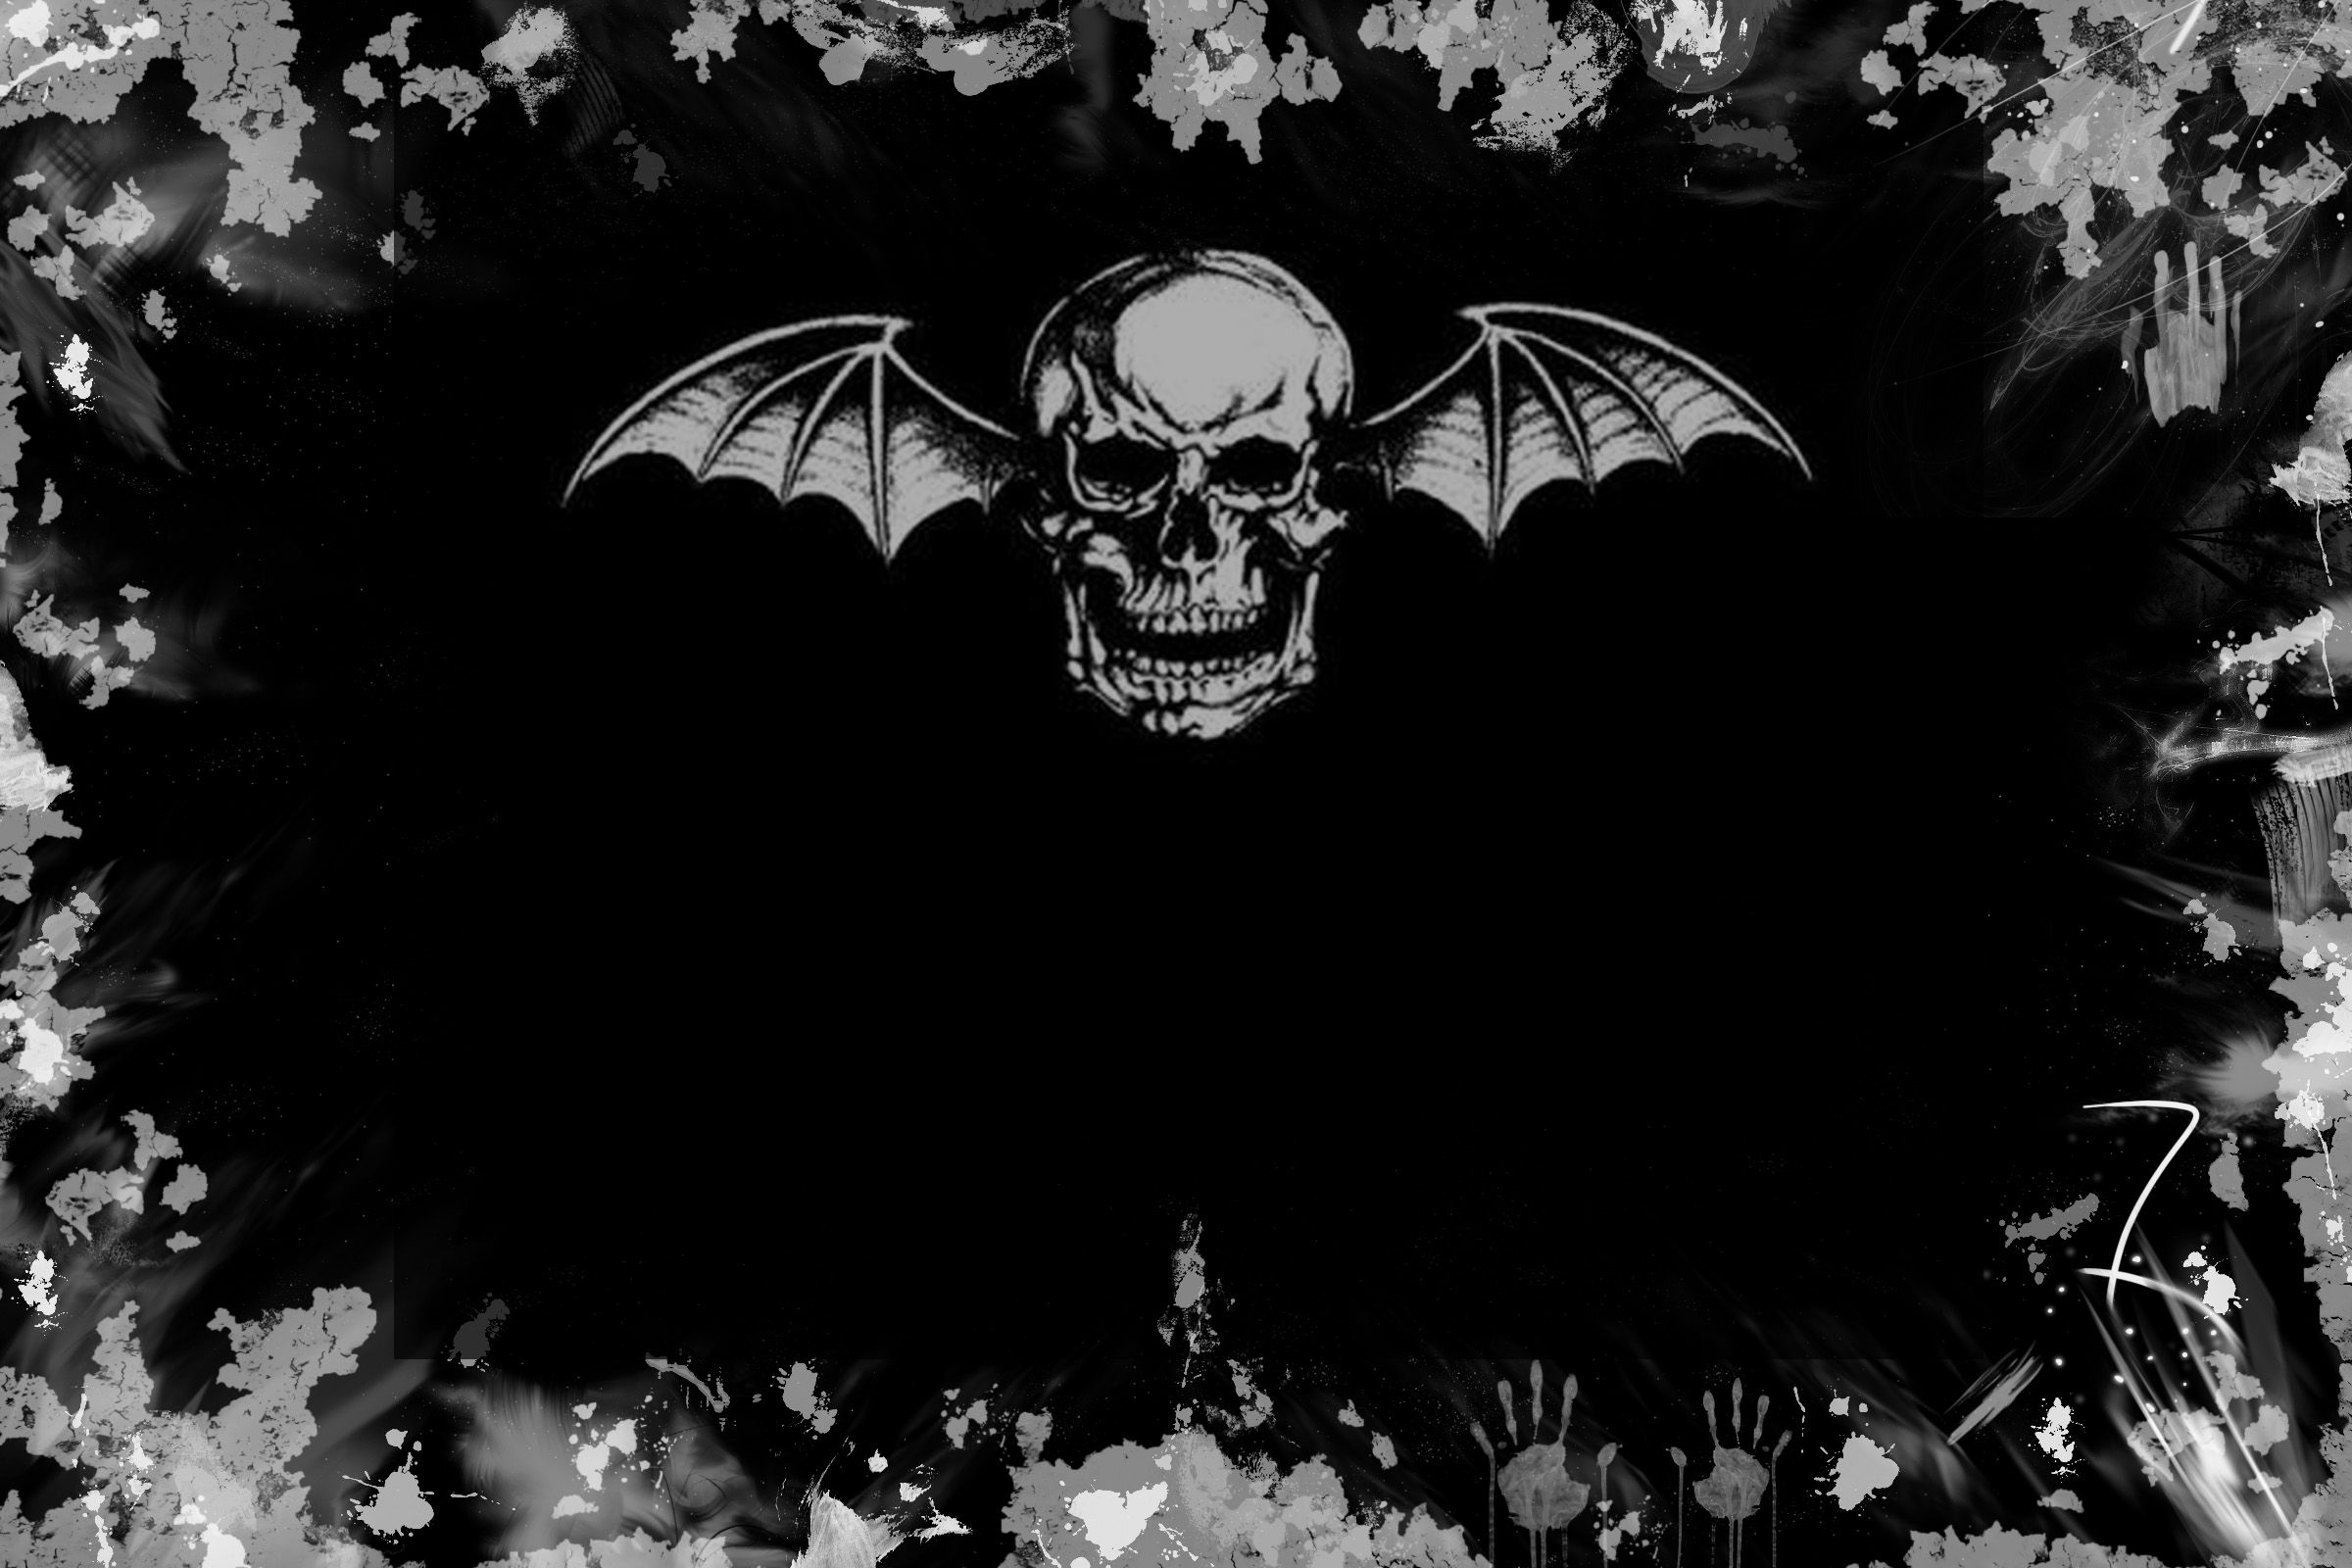 Download wallpaper avenged sevenfold free download download wallpaper avenged sevenfold voltagebd Gallery